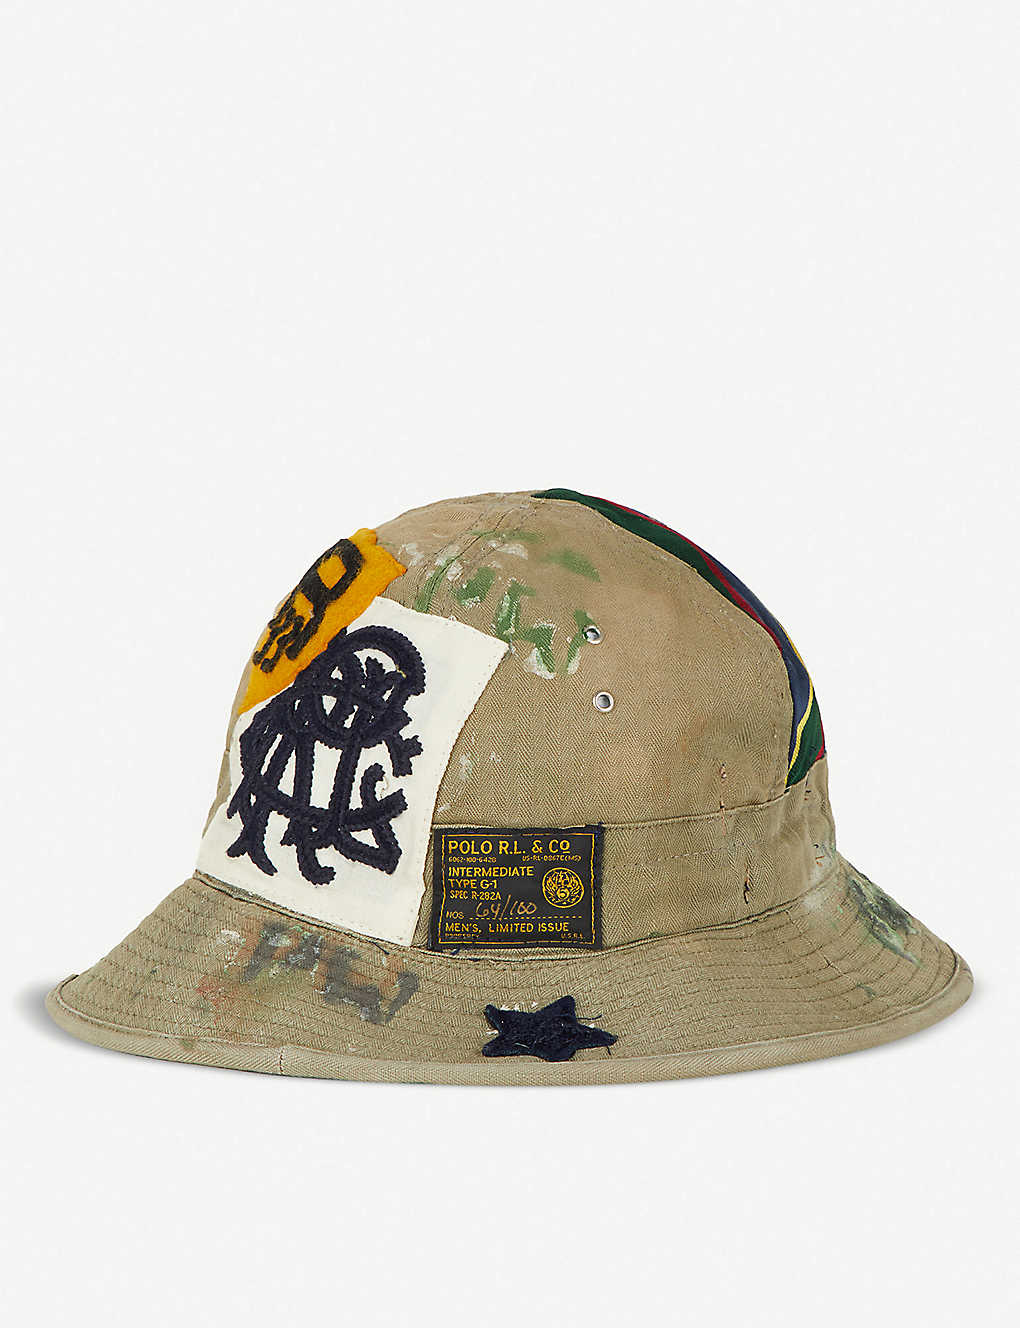 POLO RALPH LAUREN - Embroidered patch canvas bucket hat  249c89c38d5